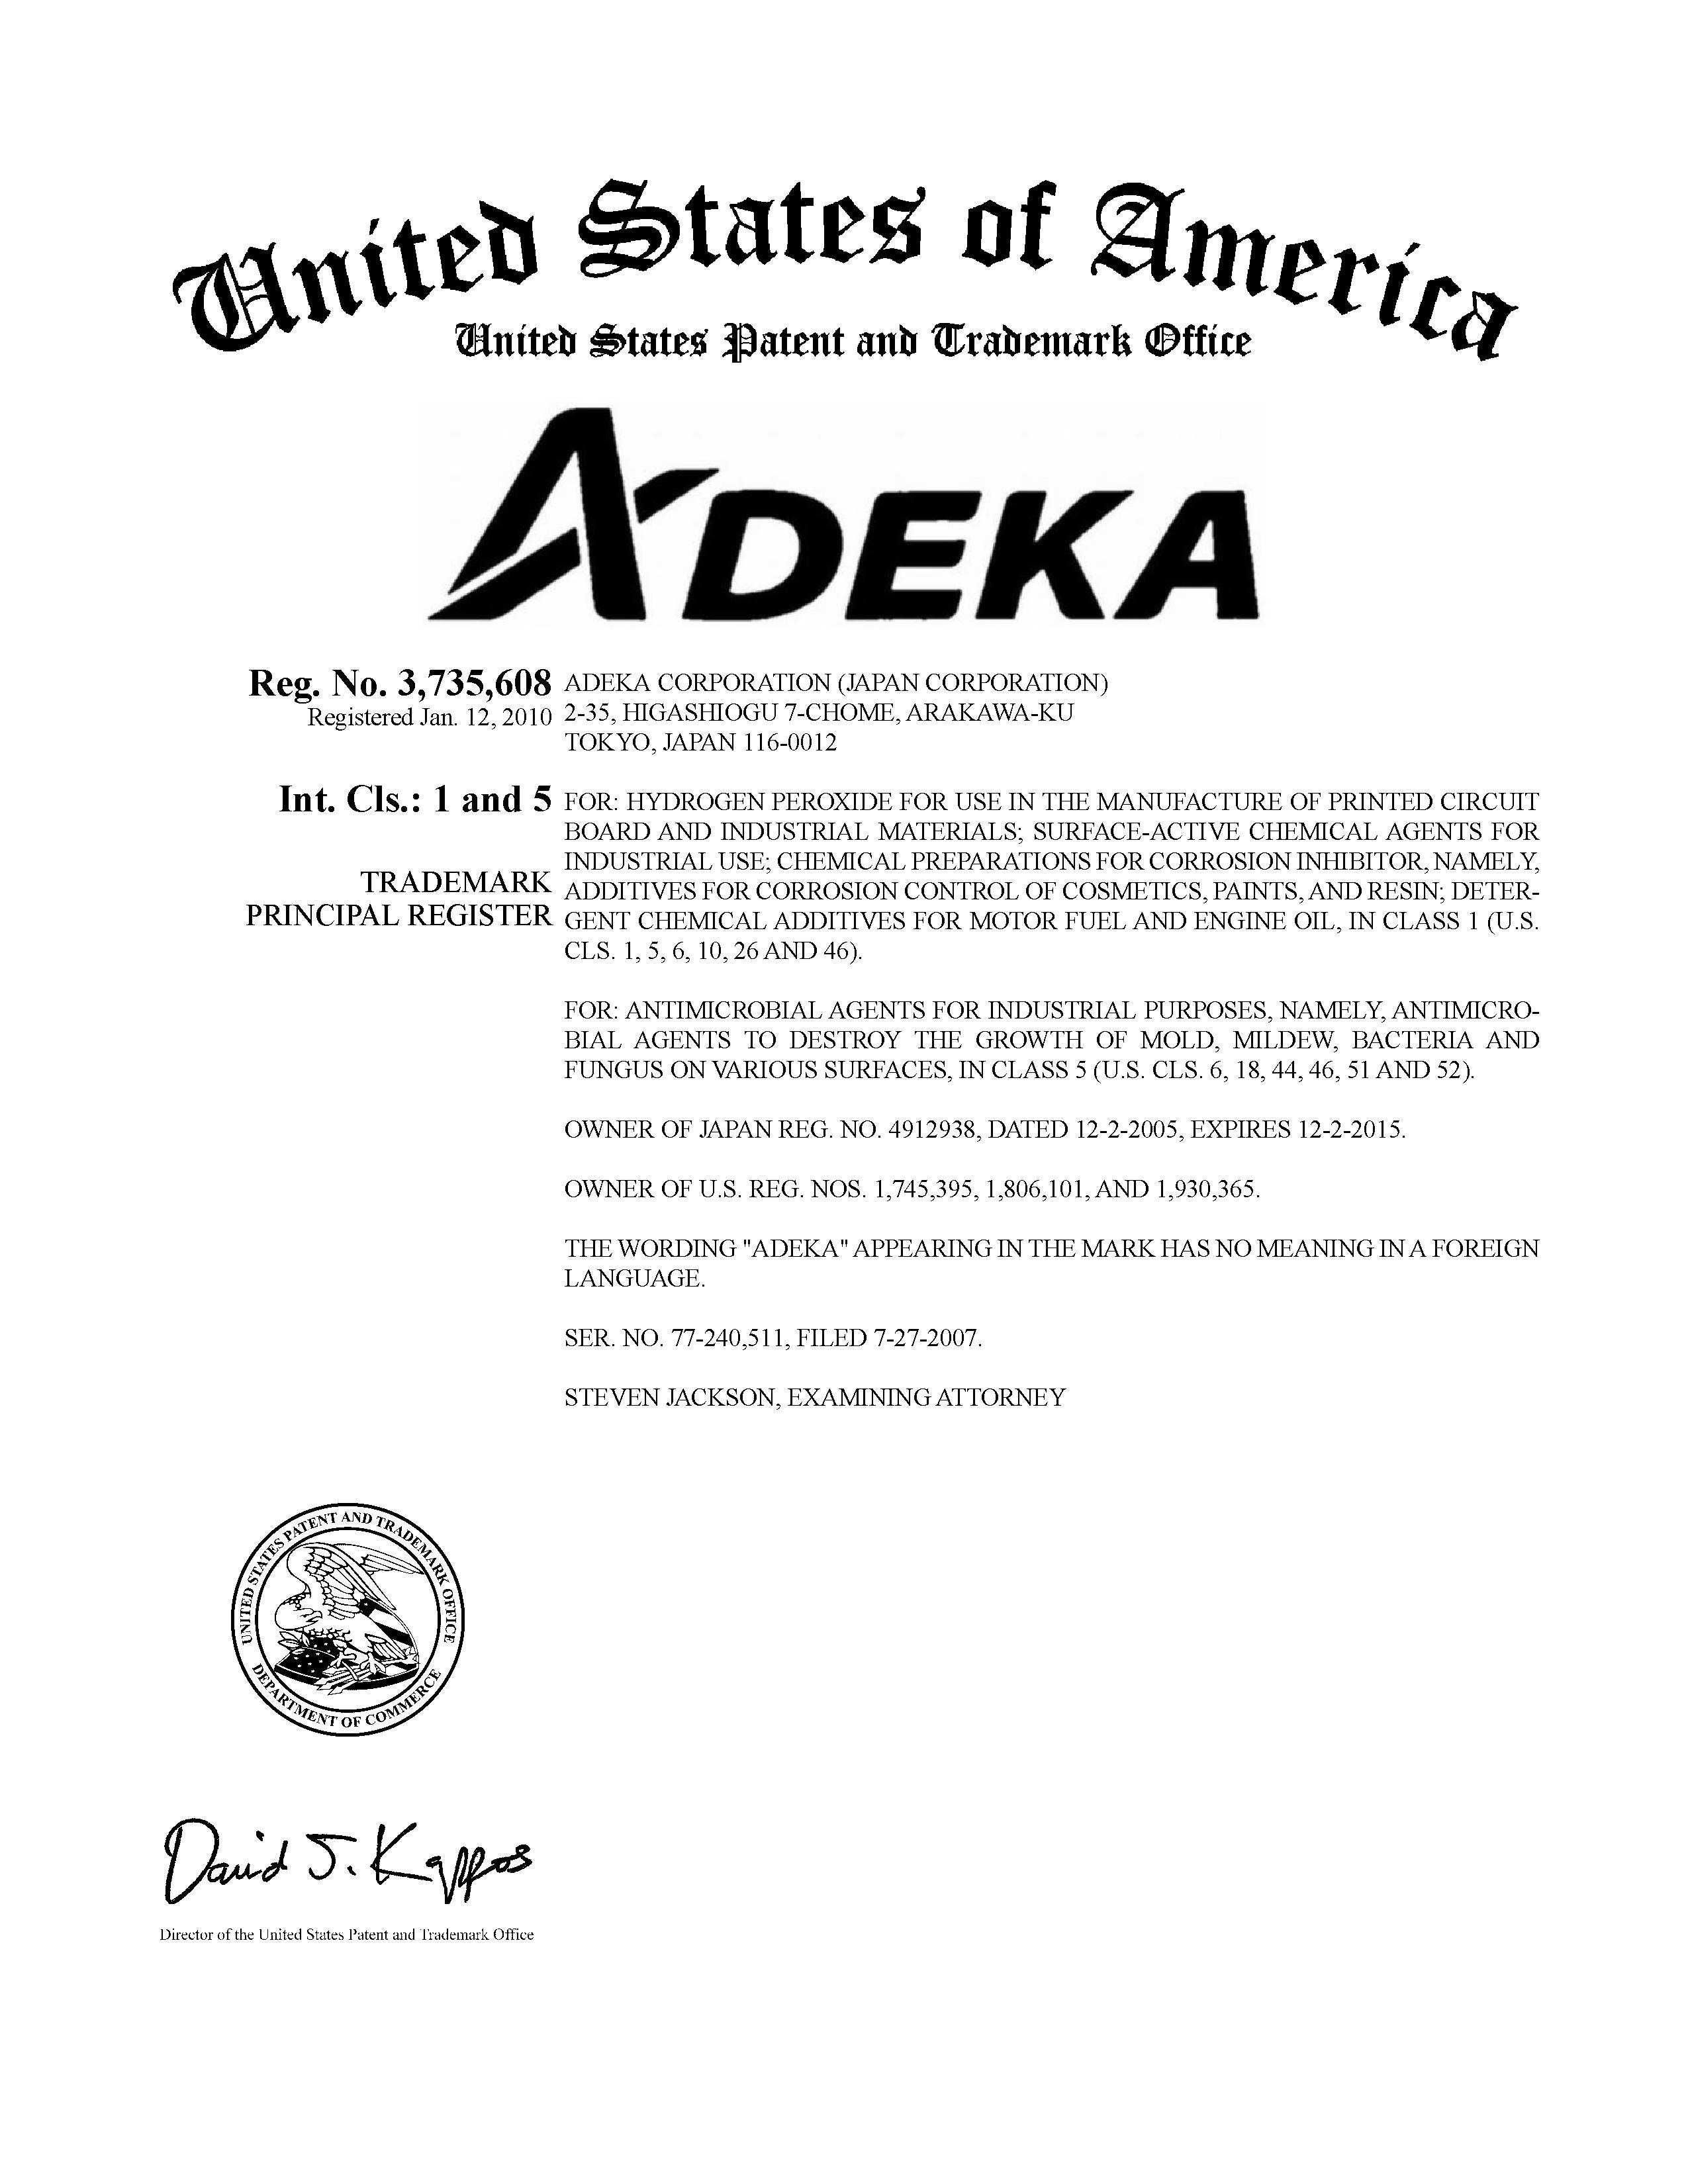 ADEKA Details, a Report by Trademark Bank | Calendar Your